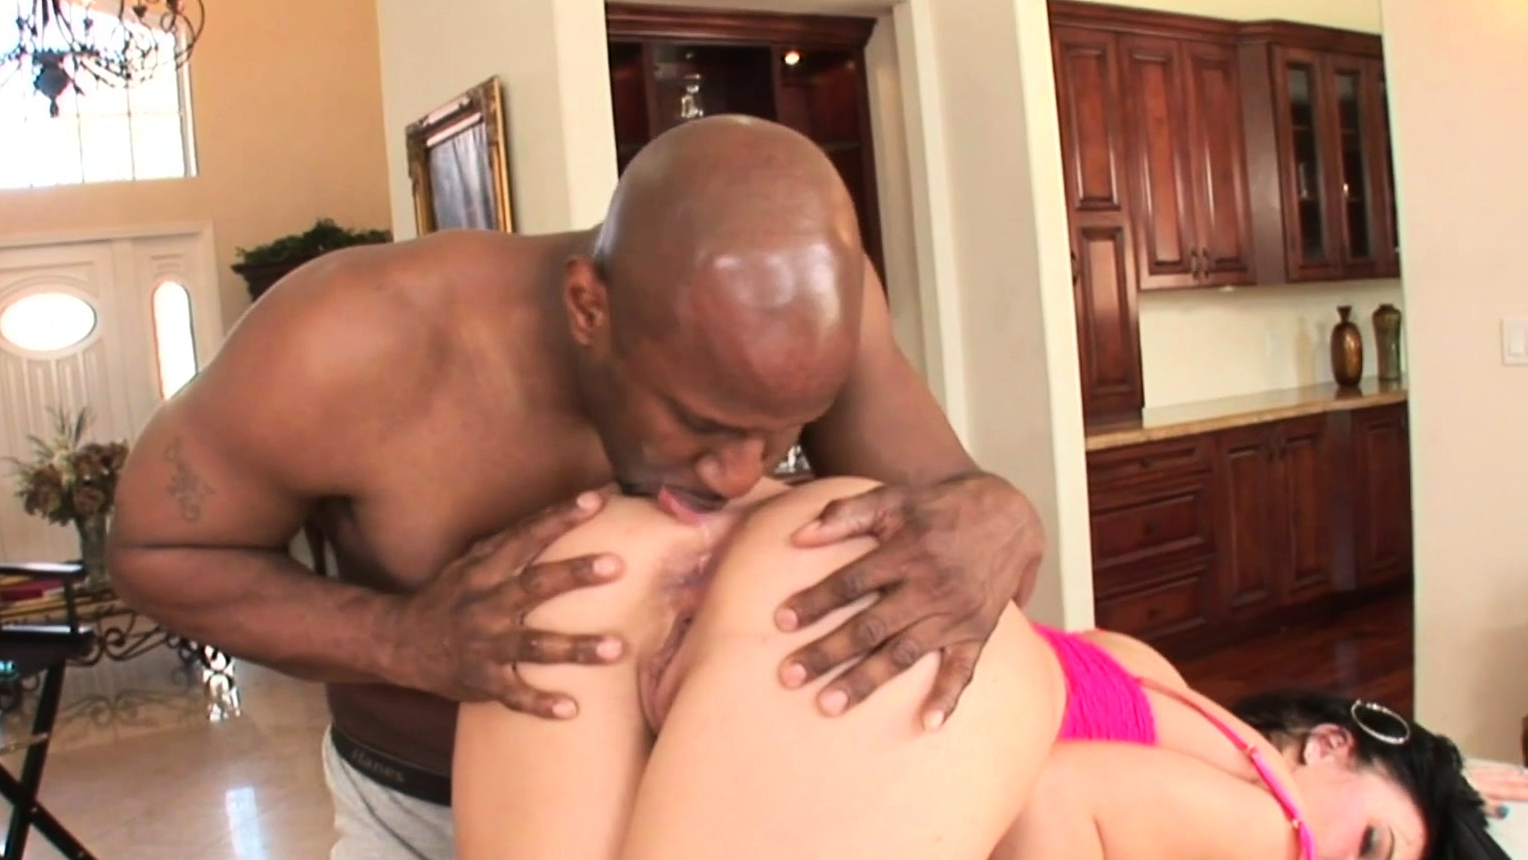 Interracial Anal Penetration With Ashli Orion